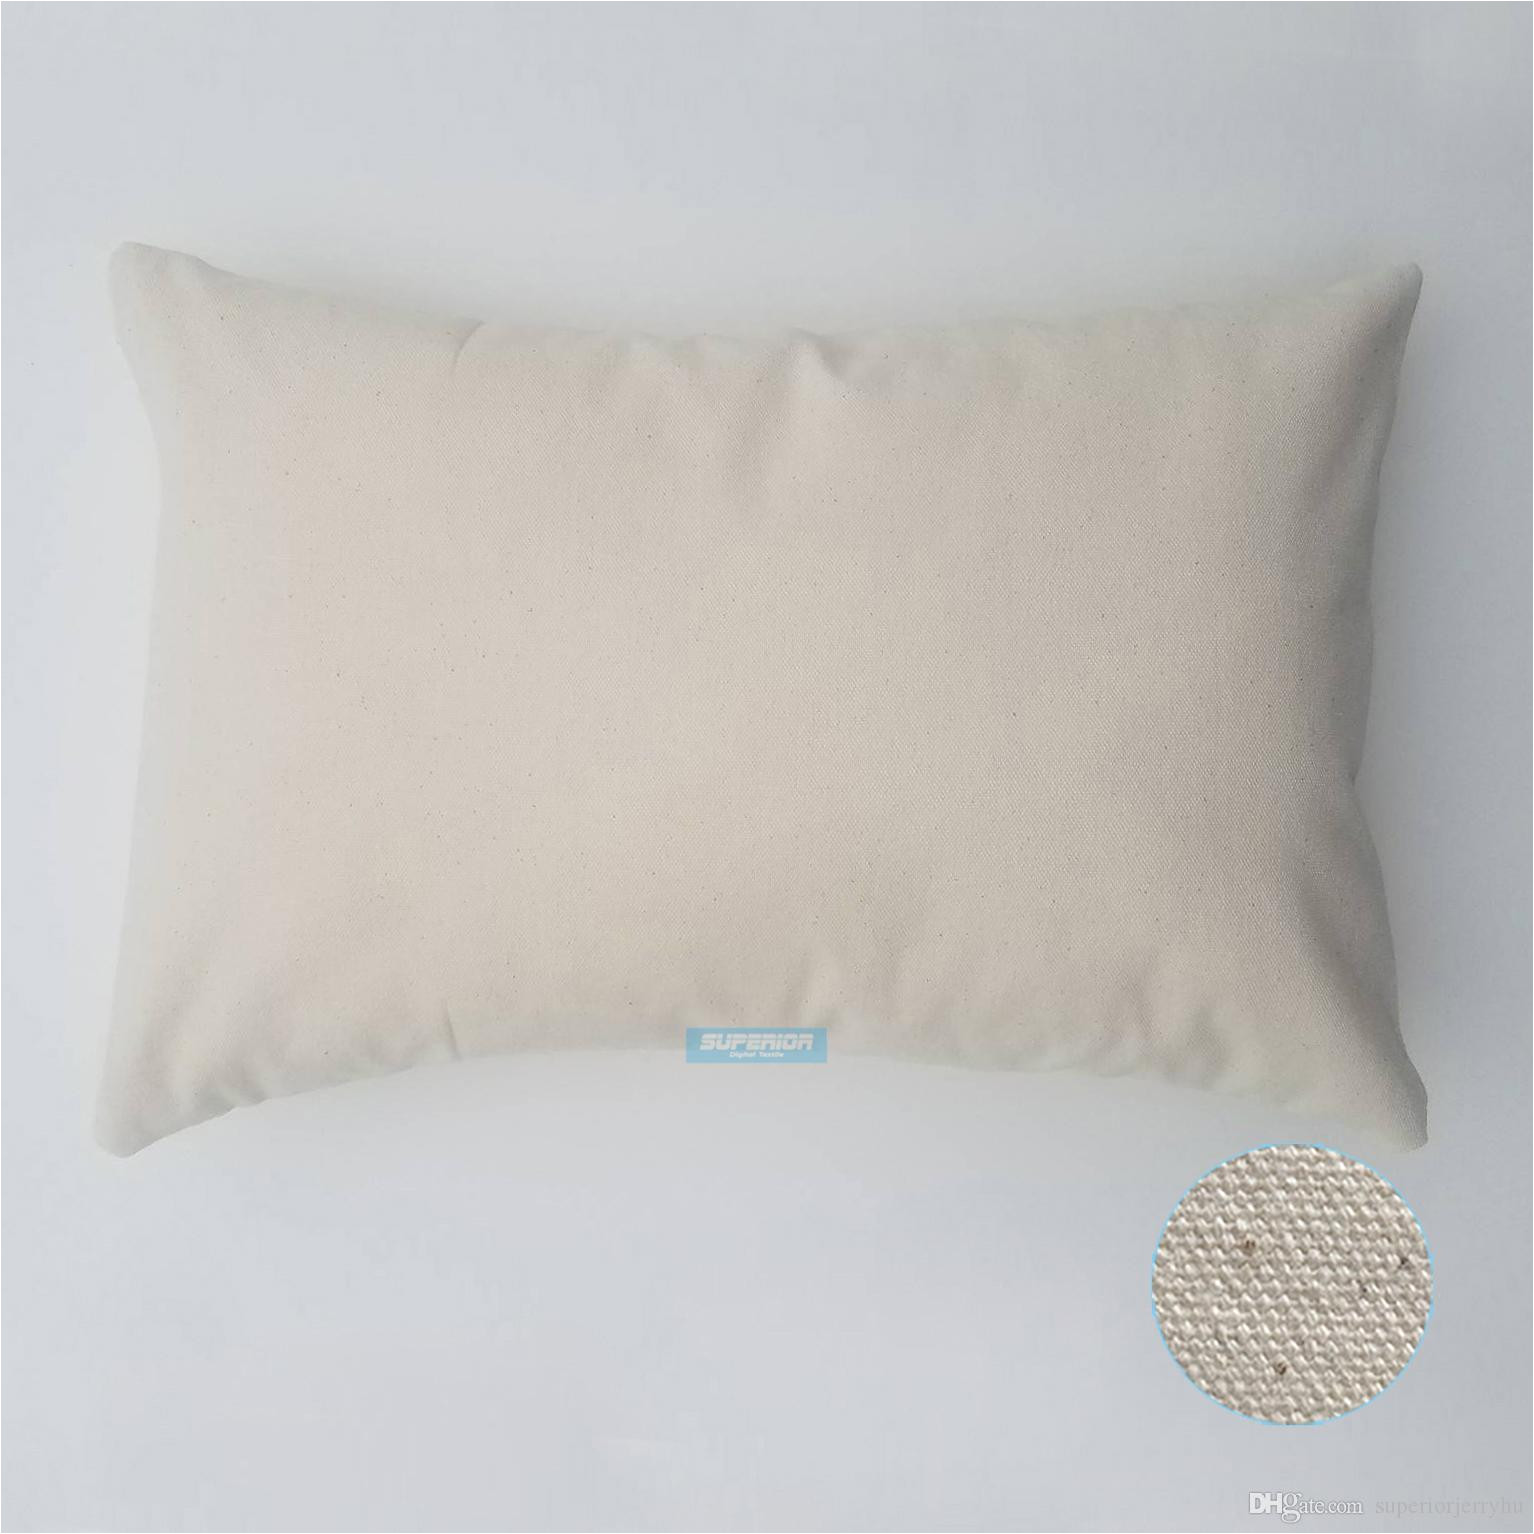 Blank Canvas Pillow Covers wholesale Canada 12×18 Inches wholesale 8oz White or Natural Cotton Canvas Pillow